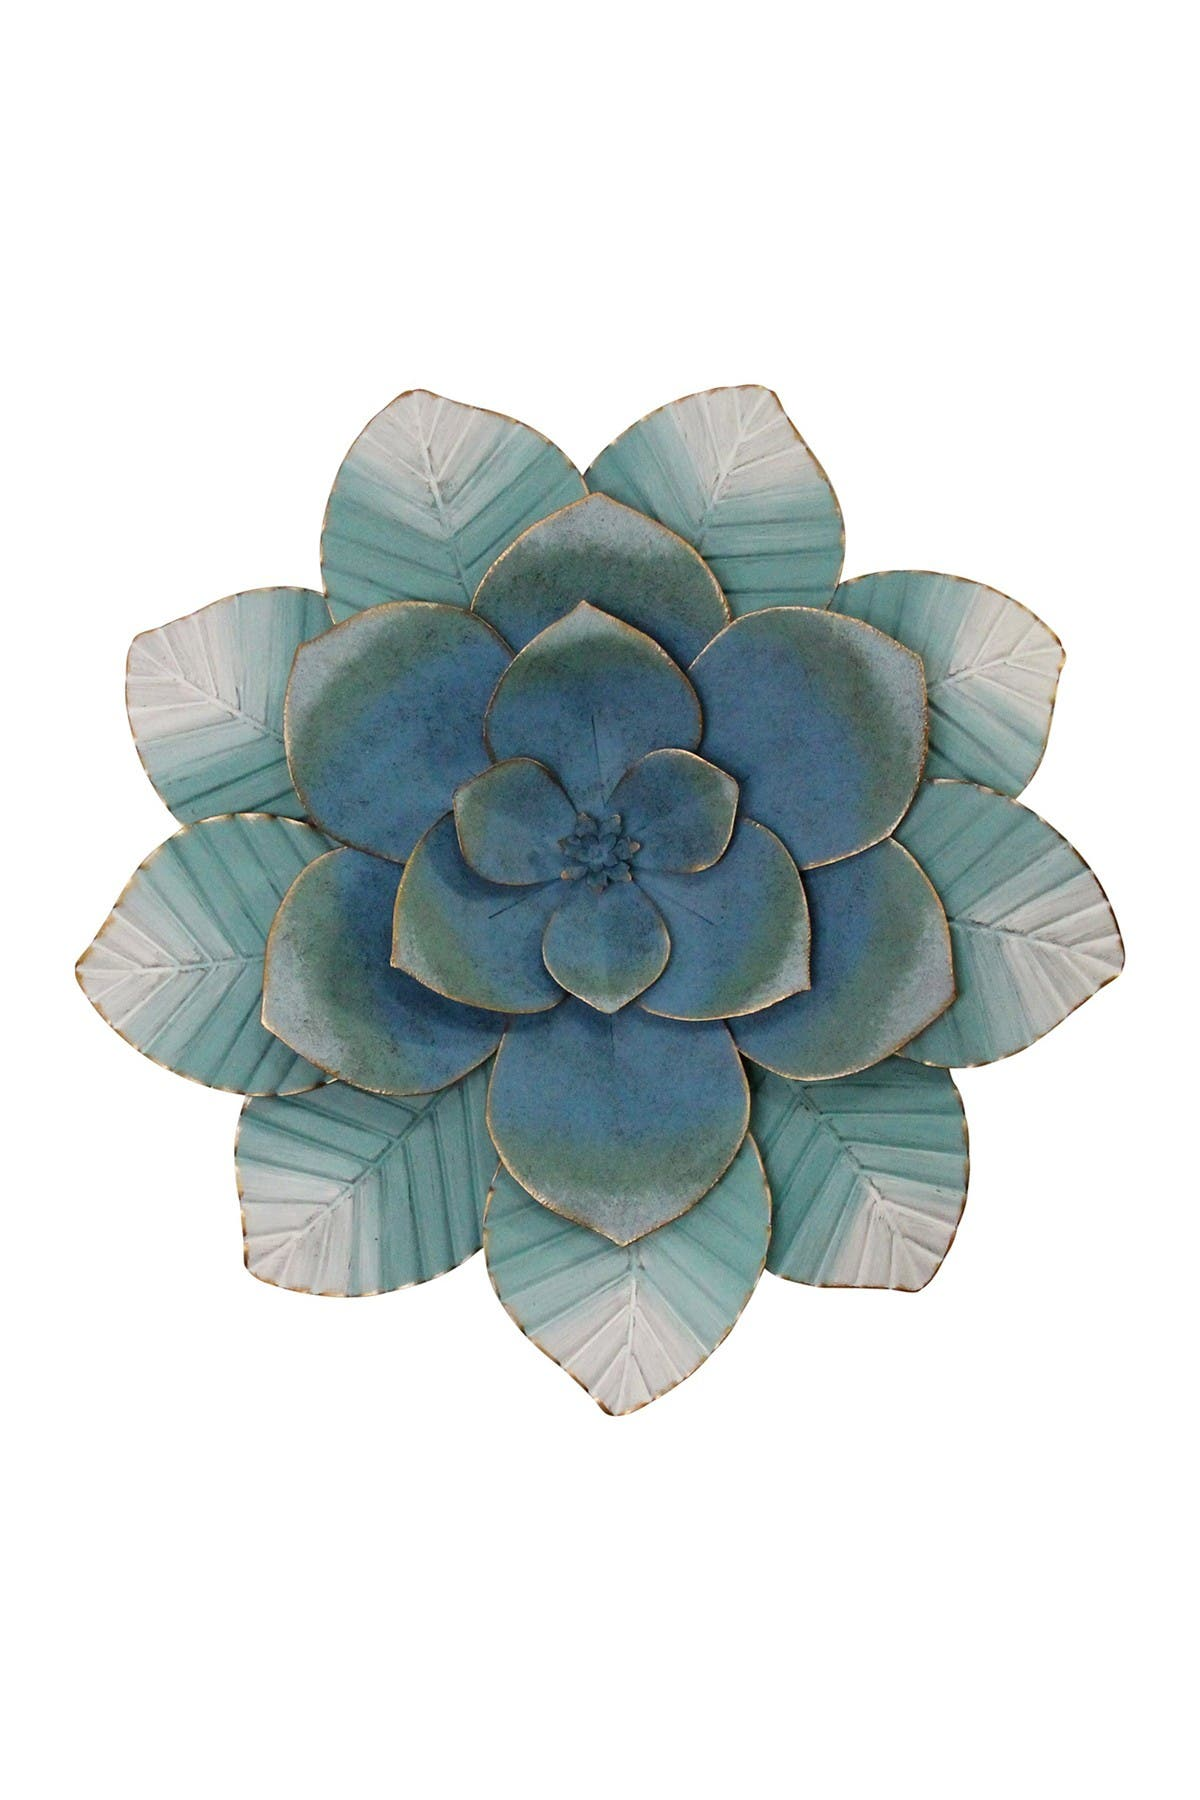 Stratton Home Blue Ombre Metal Flower Wall Decor at Nordstrom Rack